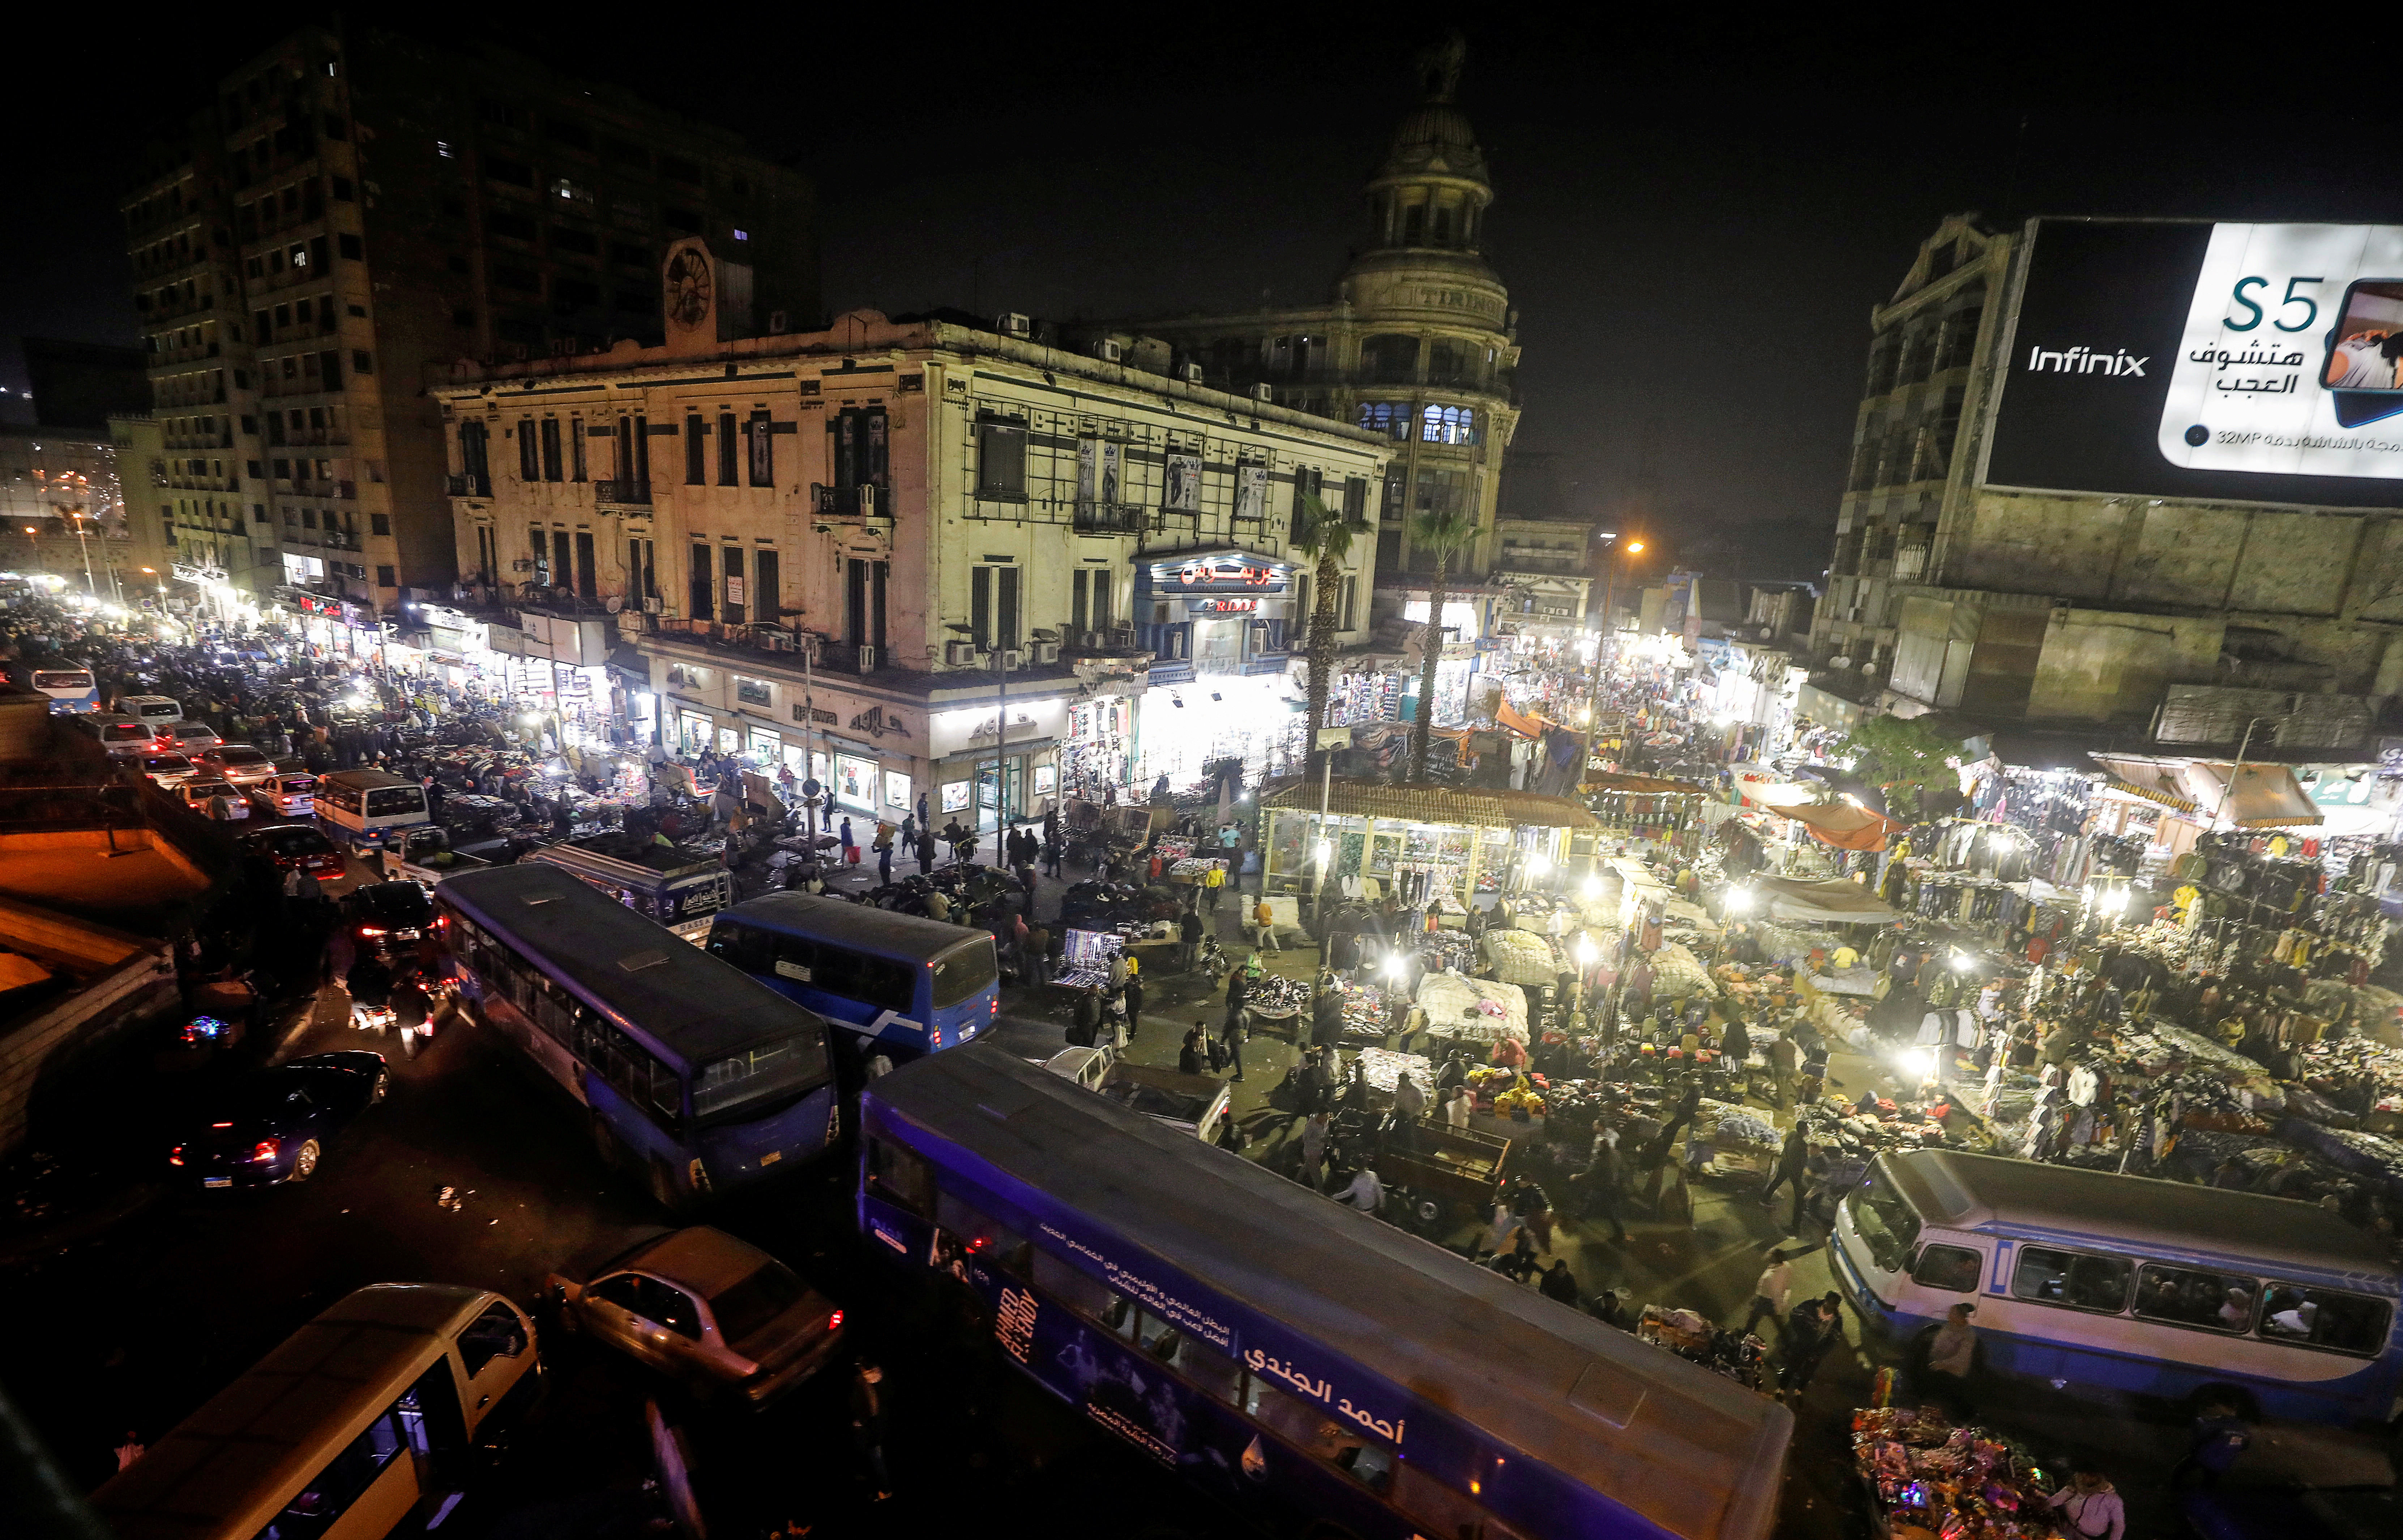 A general view shows the crowd and shops at Al Ataba, a popular market in central Cairo, Egypt January 28, 2020. Picture taken January 28, 2020. REUTERS/Mohamed Abd El Ghany     TPX IMAGES OF THE DAY - RC22RE9SLTNU